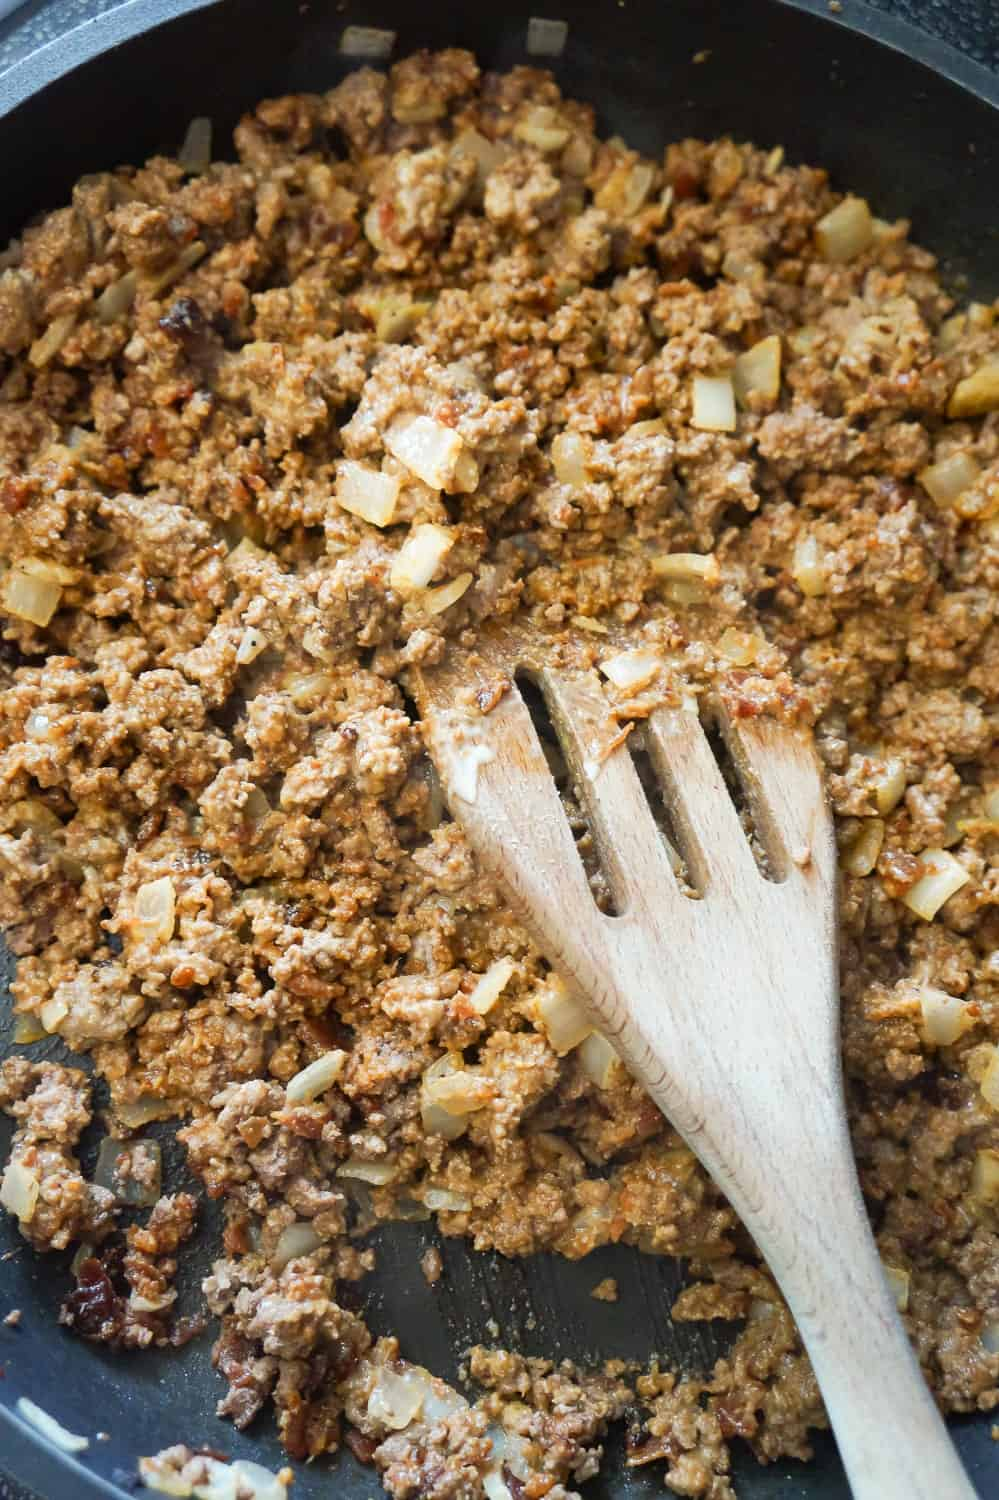 ground beef mixture in a frying pan